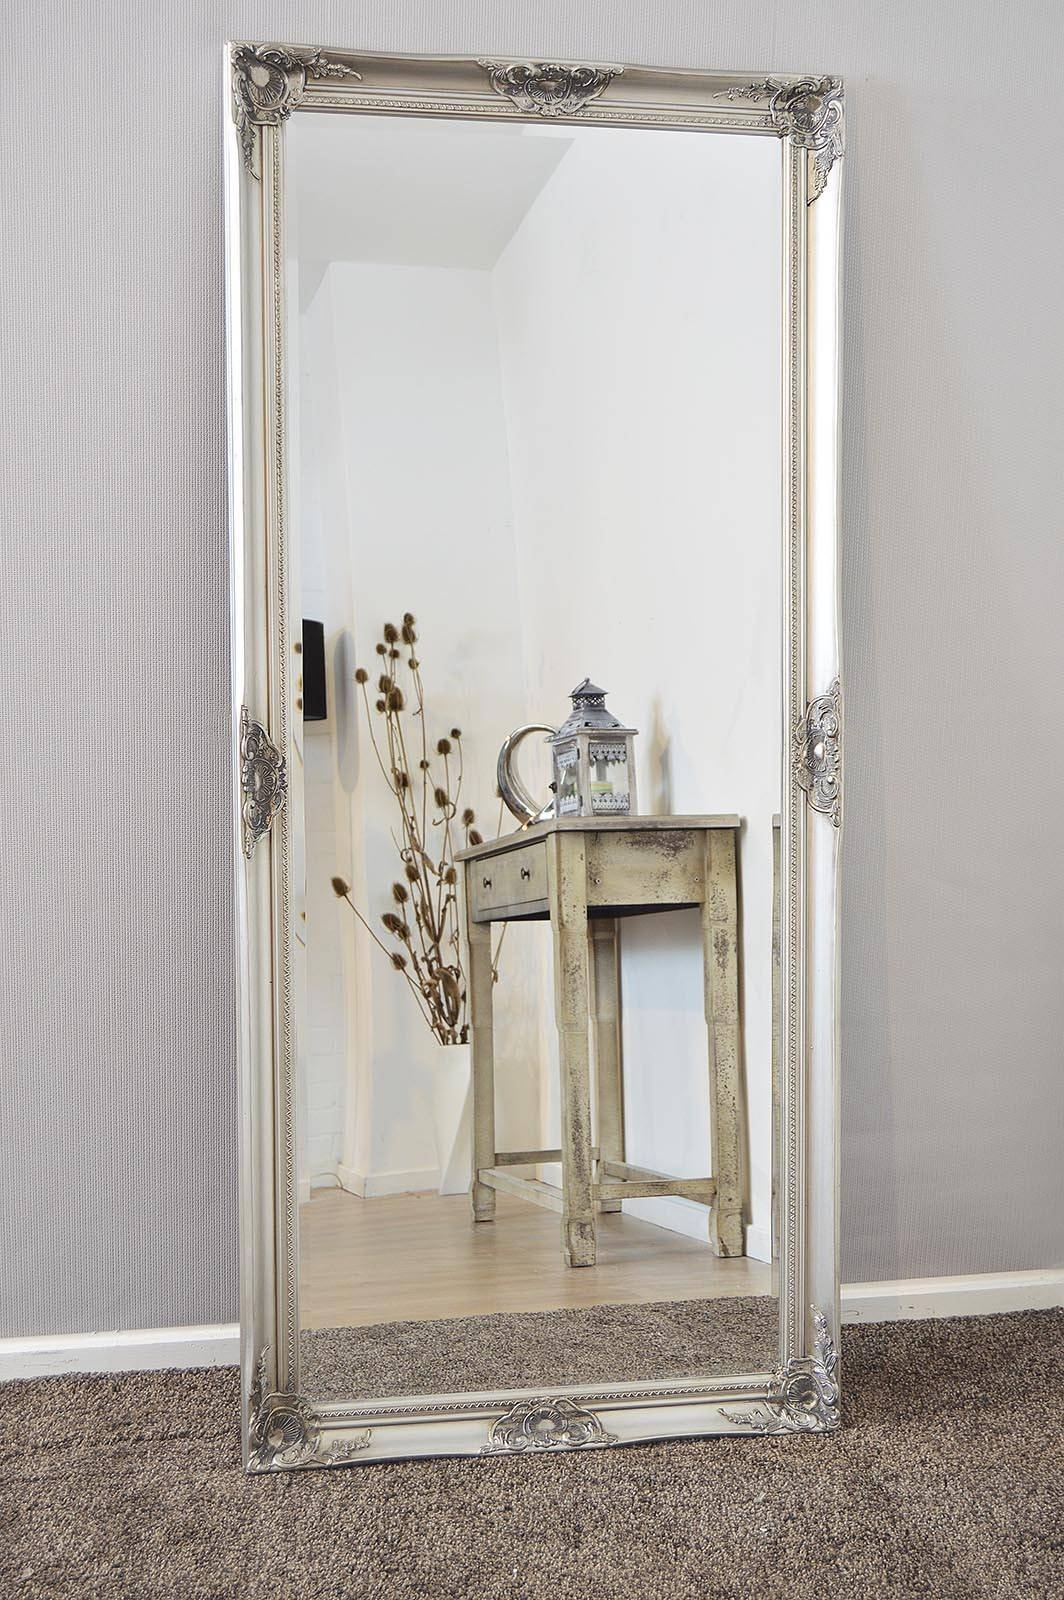 Shabby Chic Wall Mirror 22 Awesome Exterior With Large Silver with Silver Ornate Wall Mirrors (Image 25 of 25)